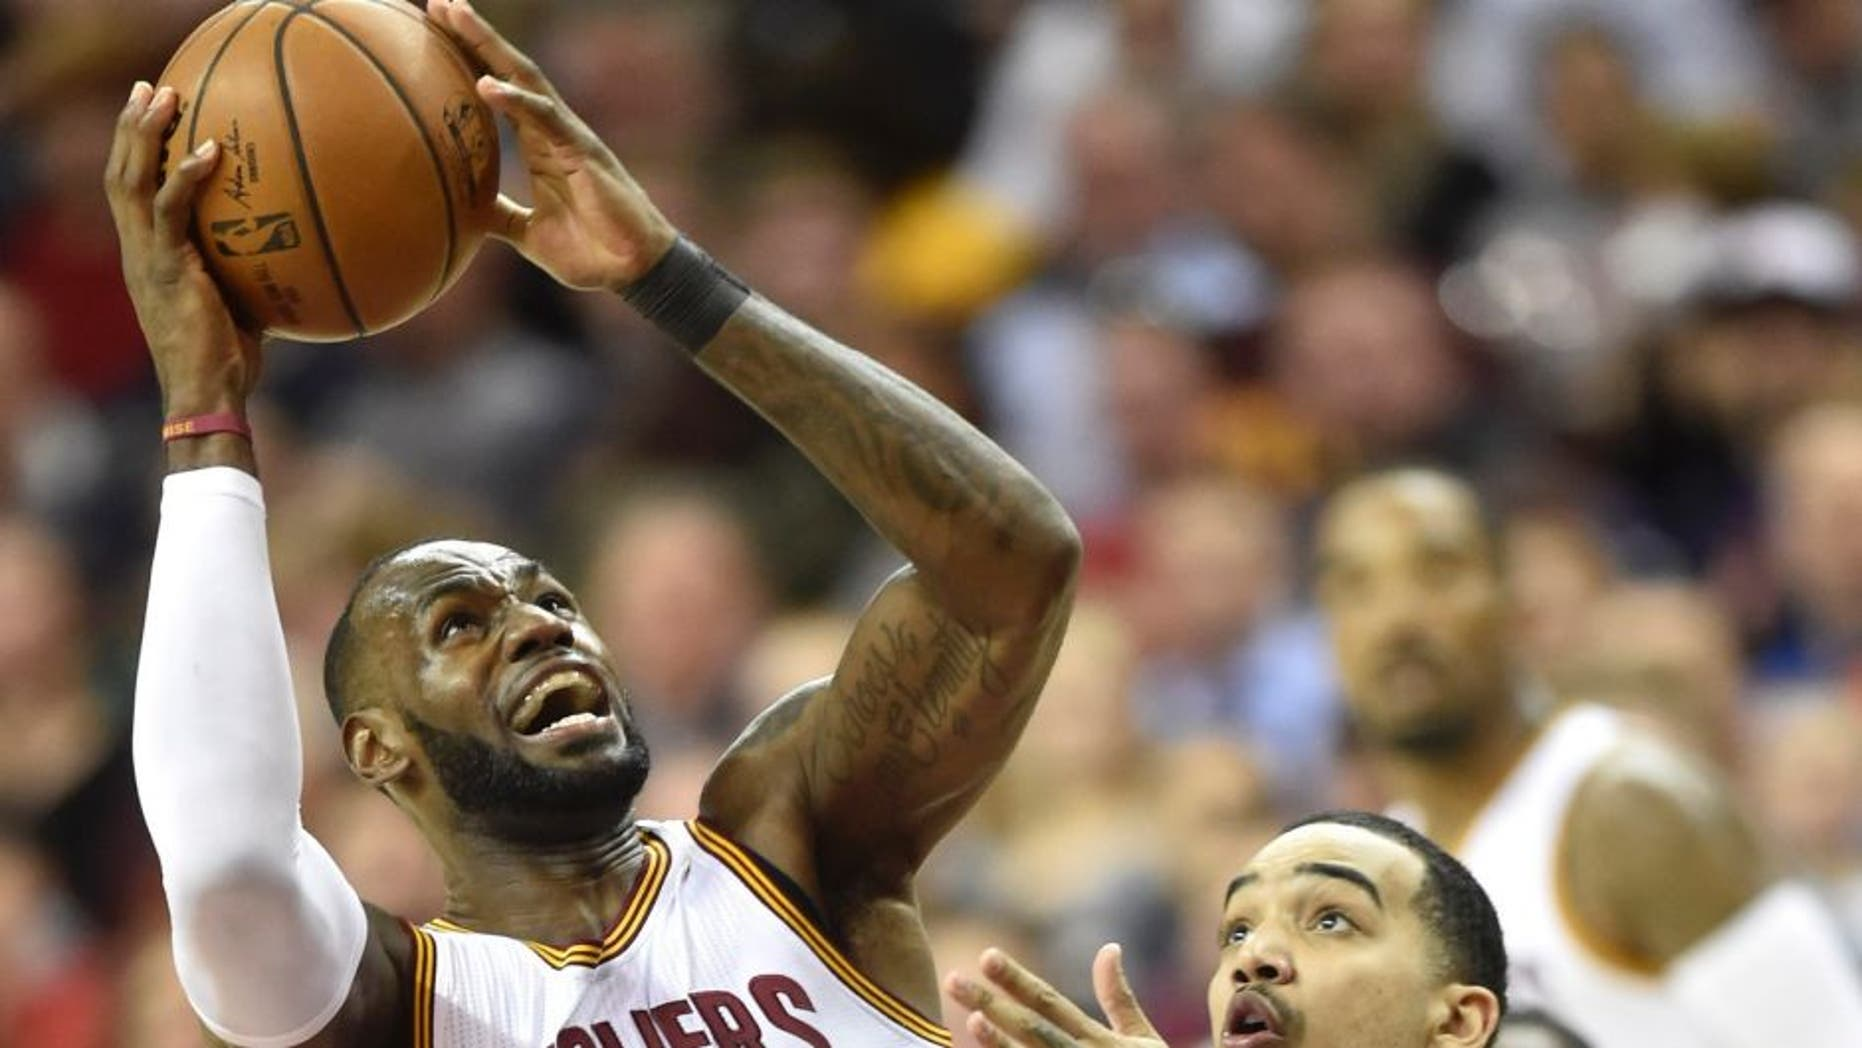 Mar 16, 2017; Cleveland, OH, USA; Cleveland Cavaliers forward LeBron James (23) shoots against Utah Jazz forward Trey Lyles (41) in the second quarter at Quicken Loans Arena. Mandatory Credit: David Richard-USA TODAY Sports